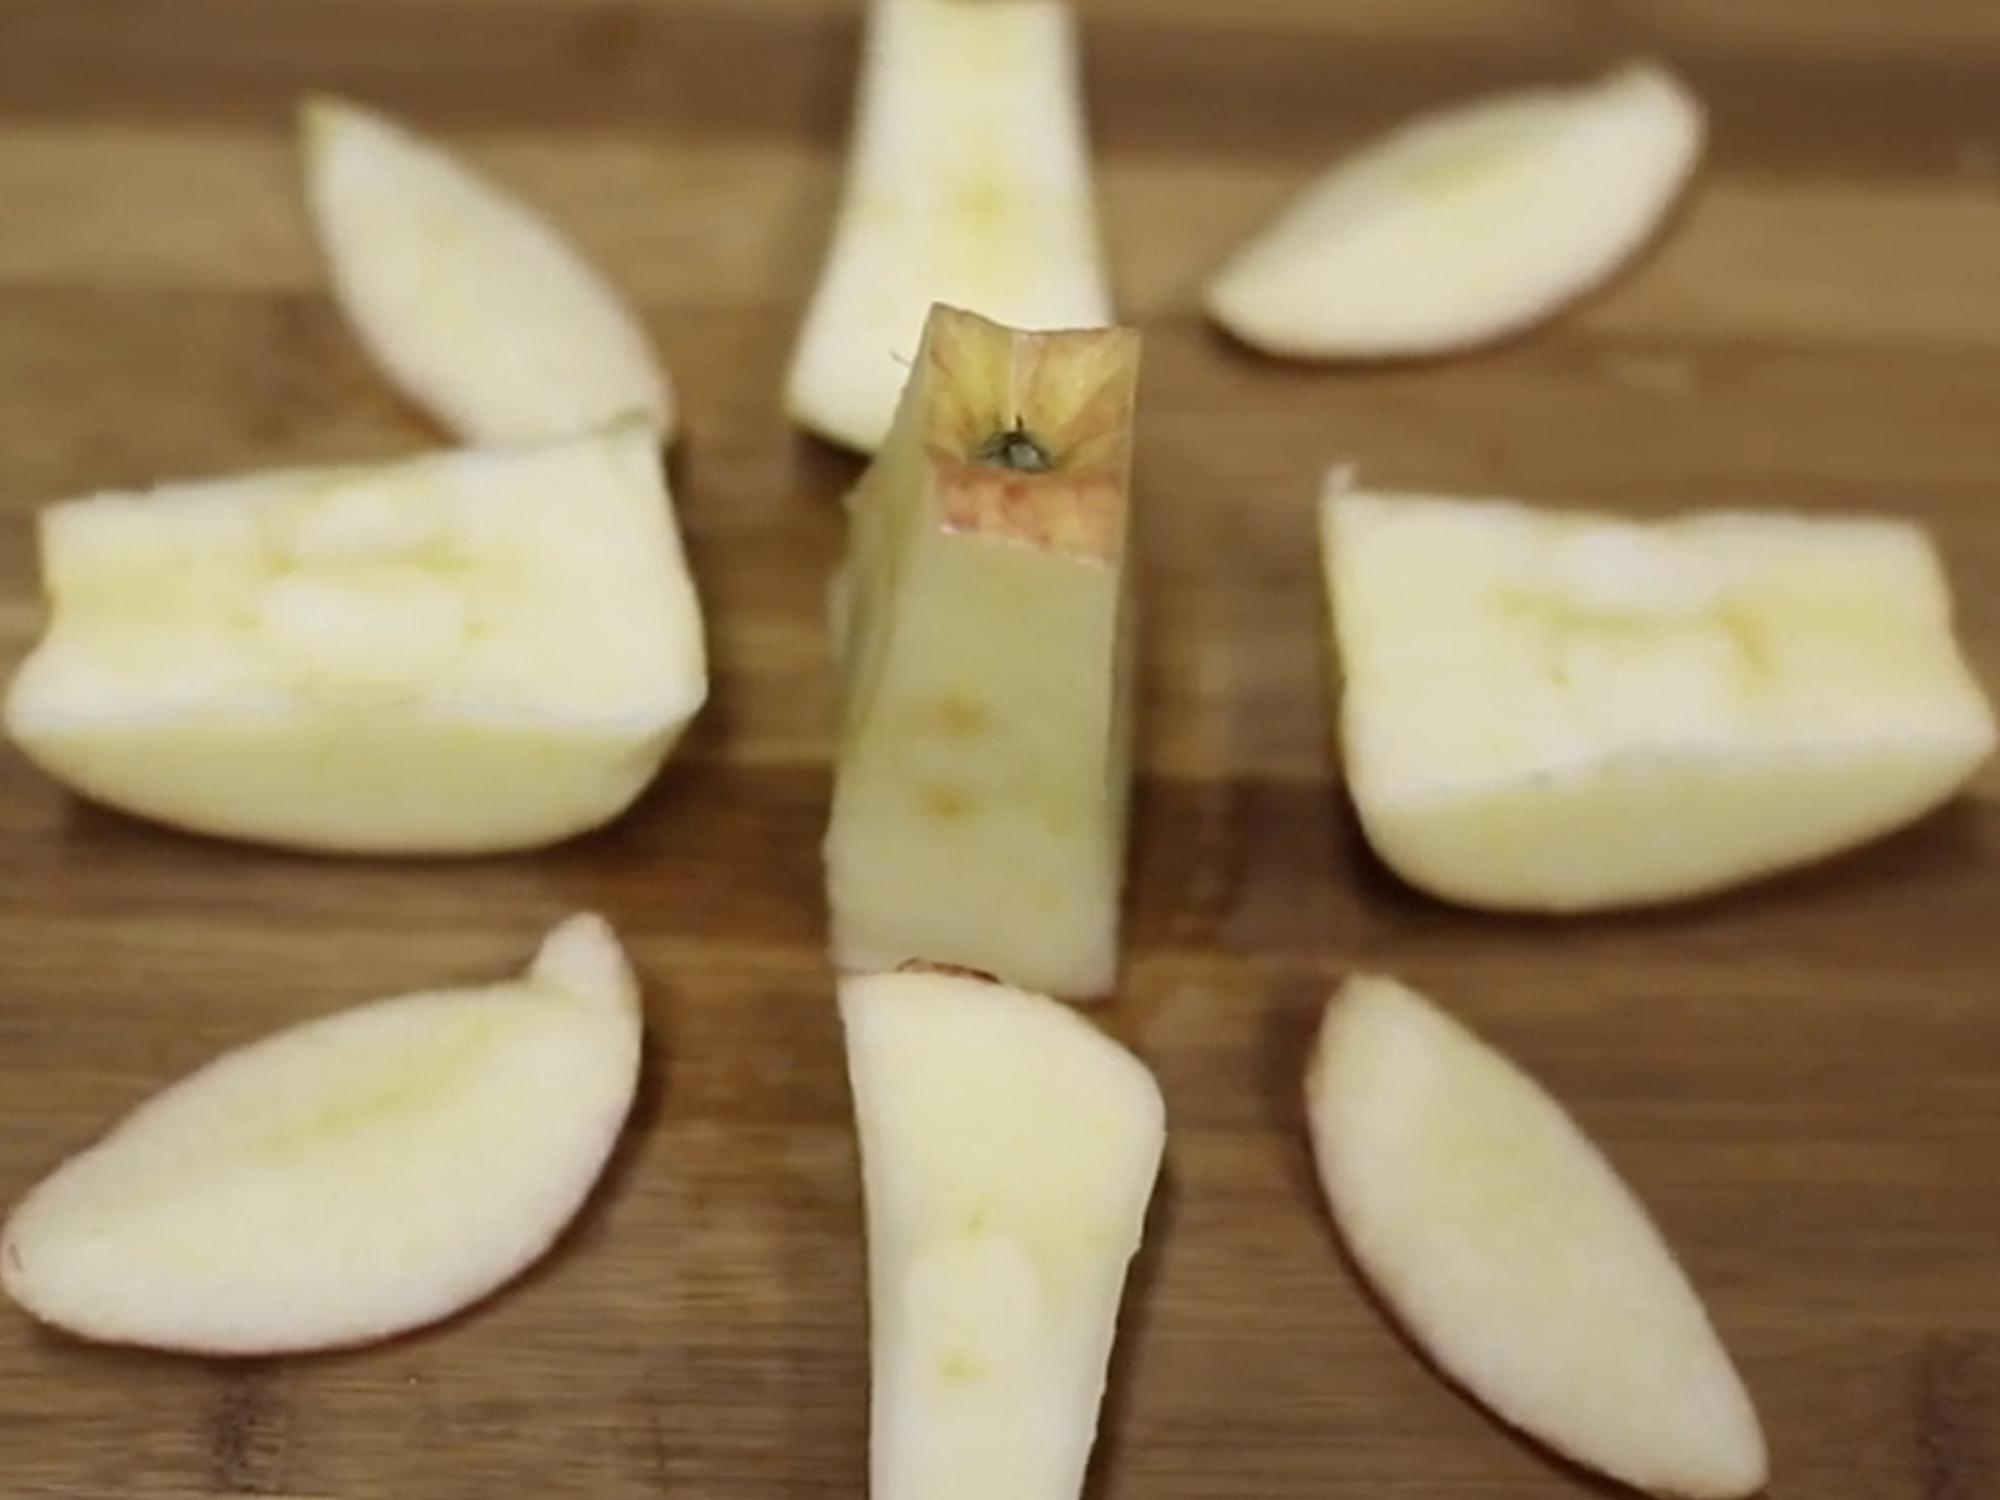 apple slices on cutting board.